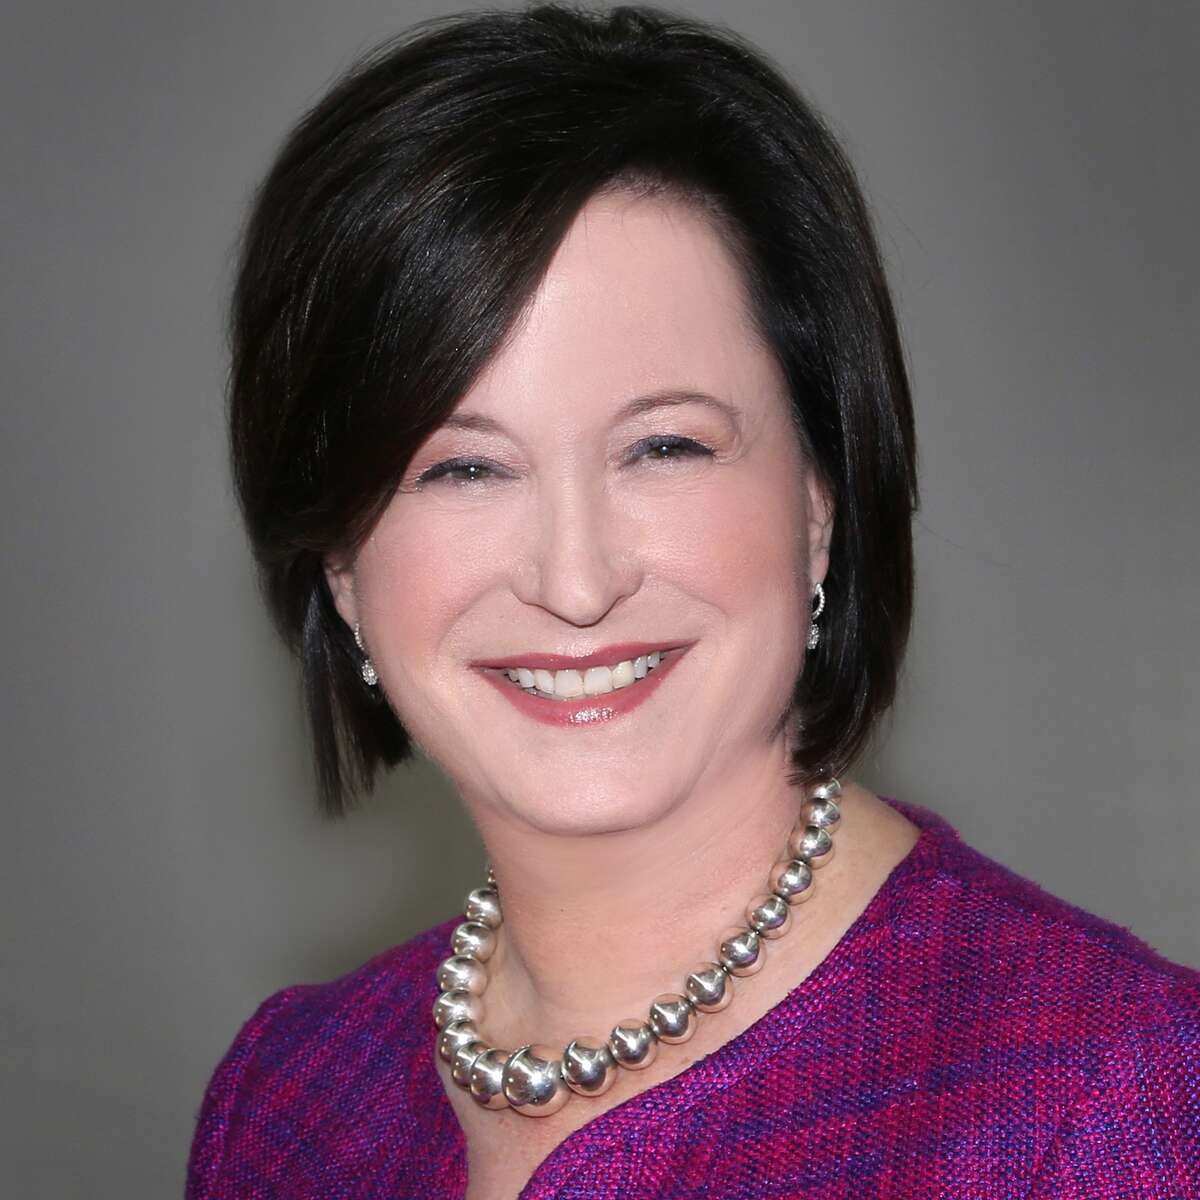 The Memorial Hermann Health System announced the appointment of Anne E. Neeson as executive vice president and CEO of the Memorial Hermann Foundation, effective Jan. 23.